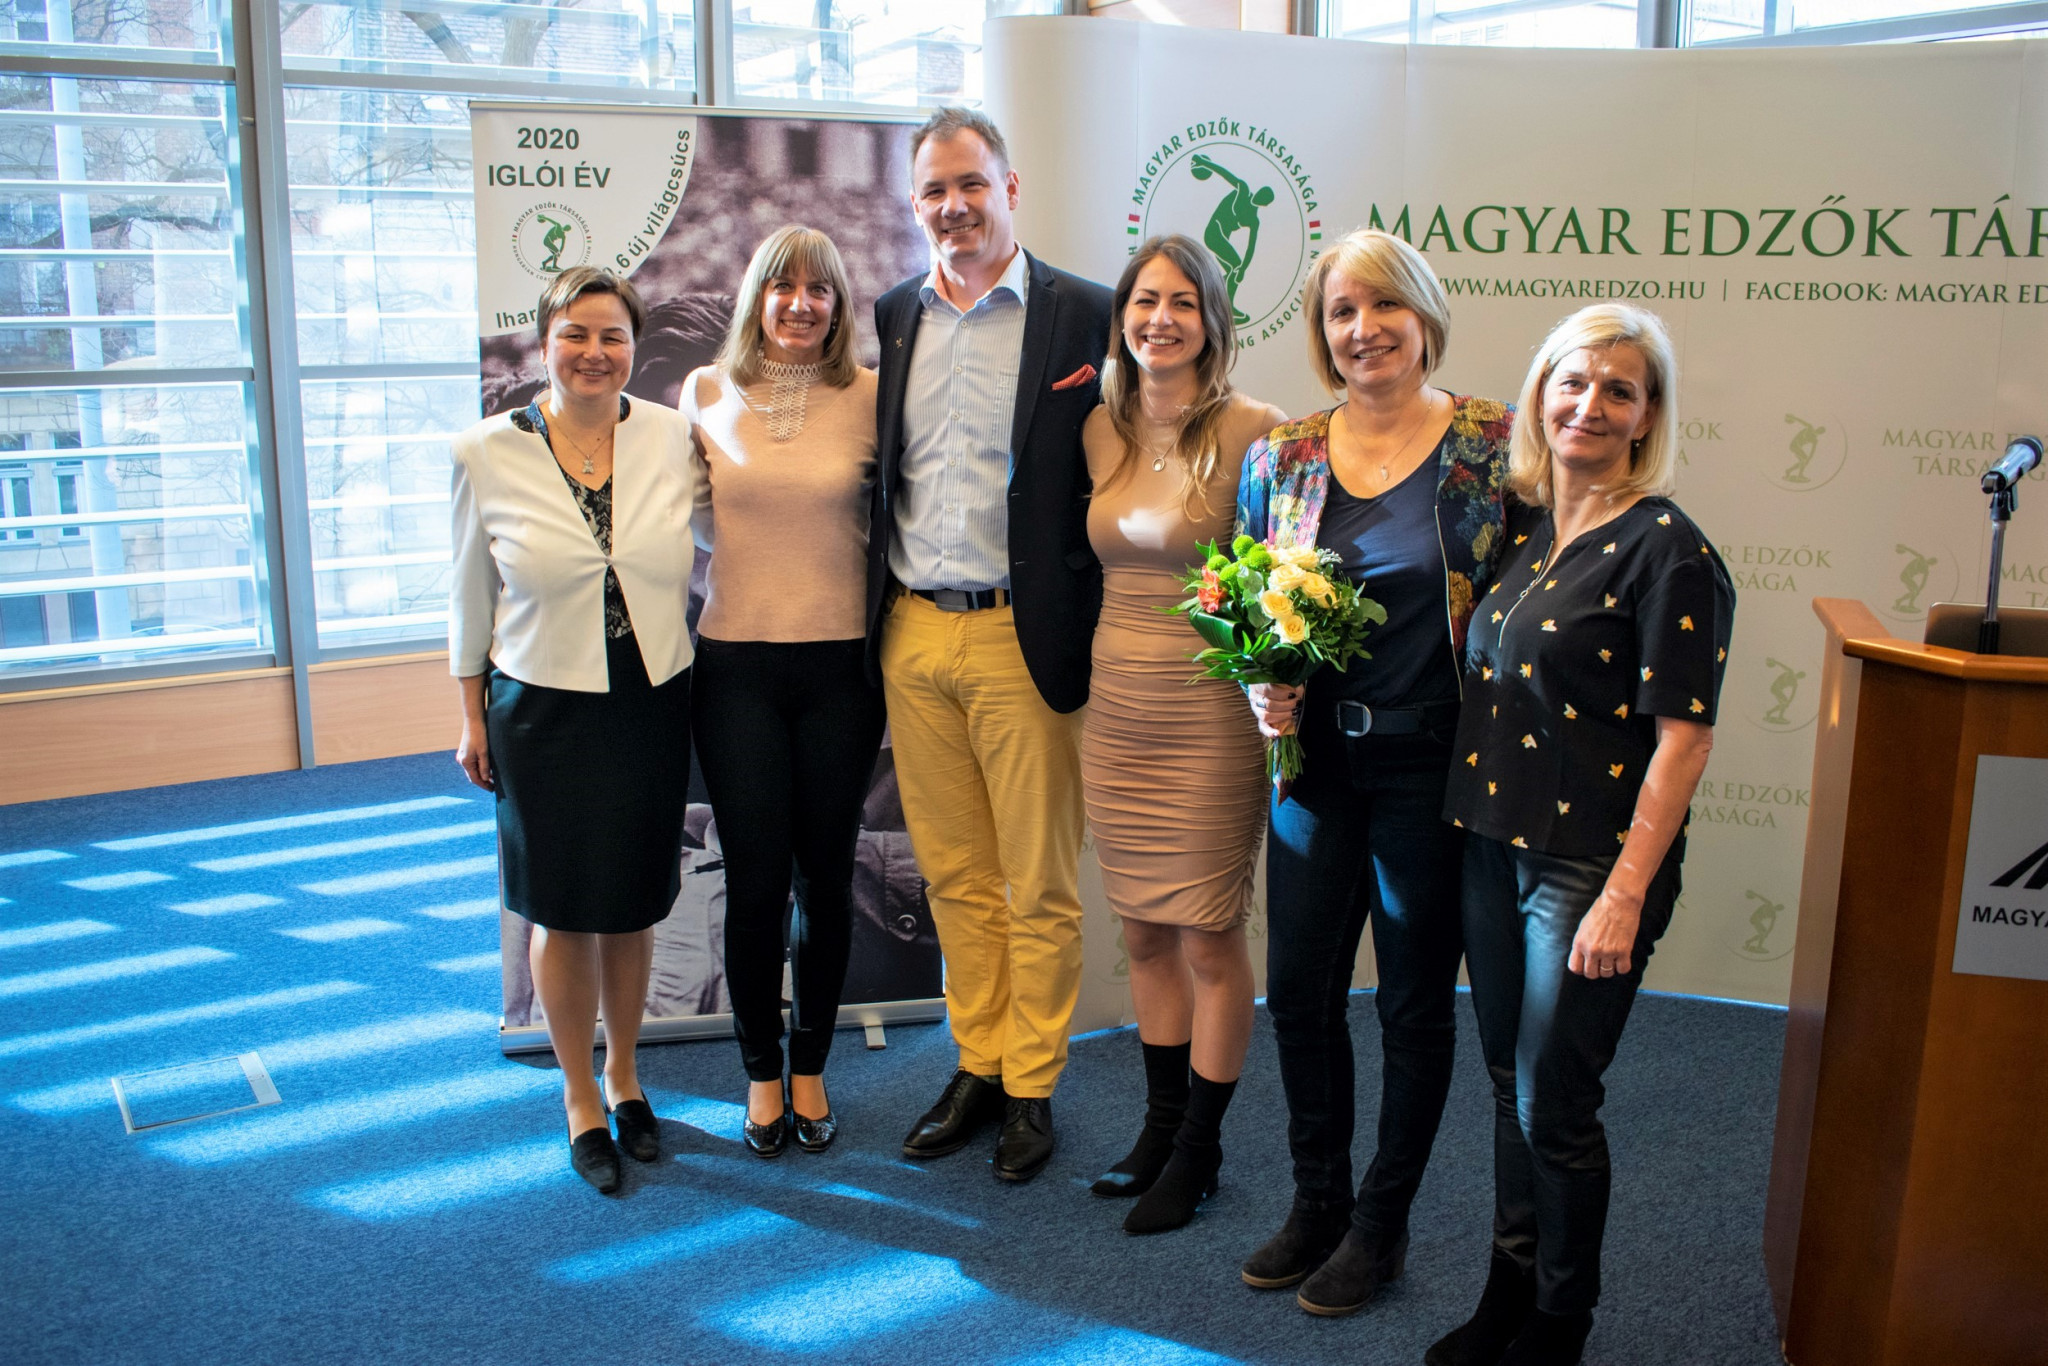 Hungarian Olympic Committee holds second conference on women's role in sport